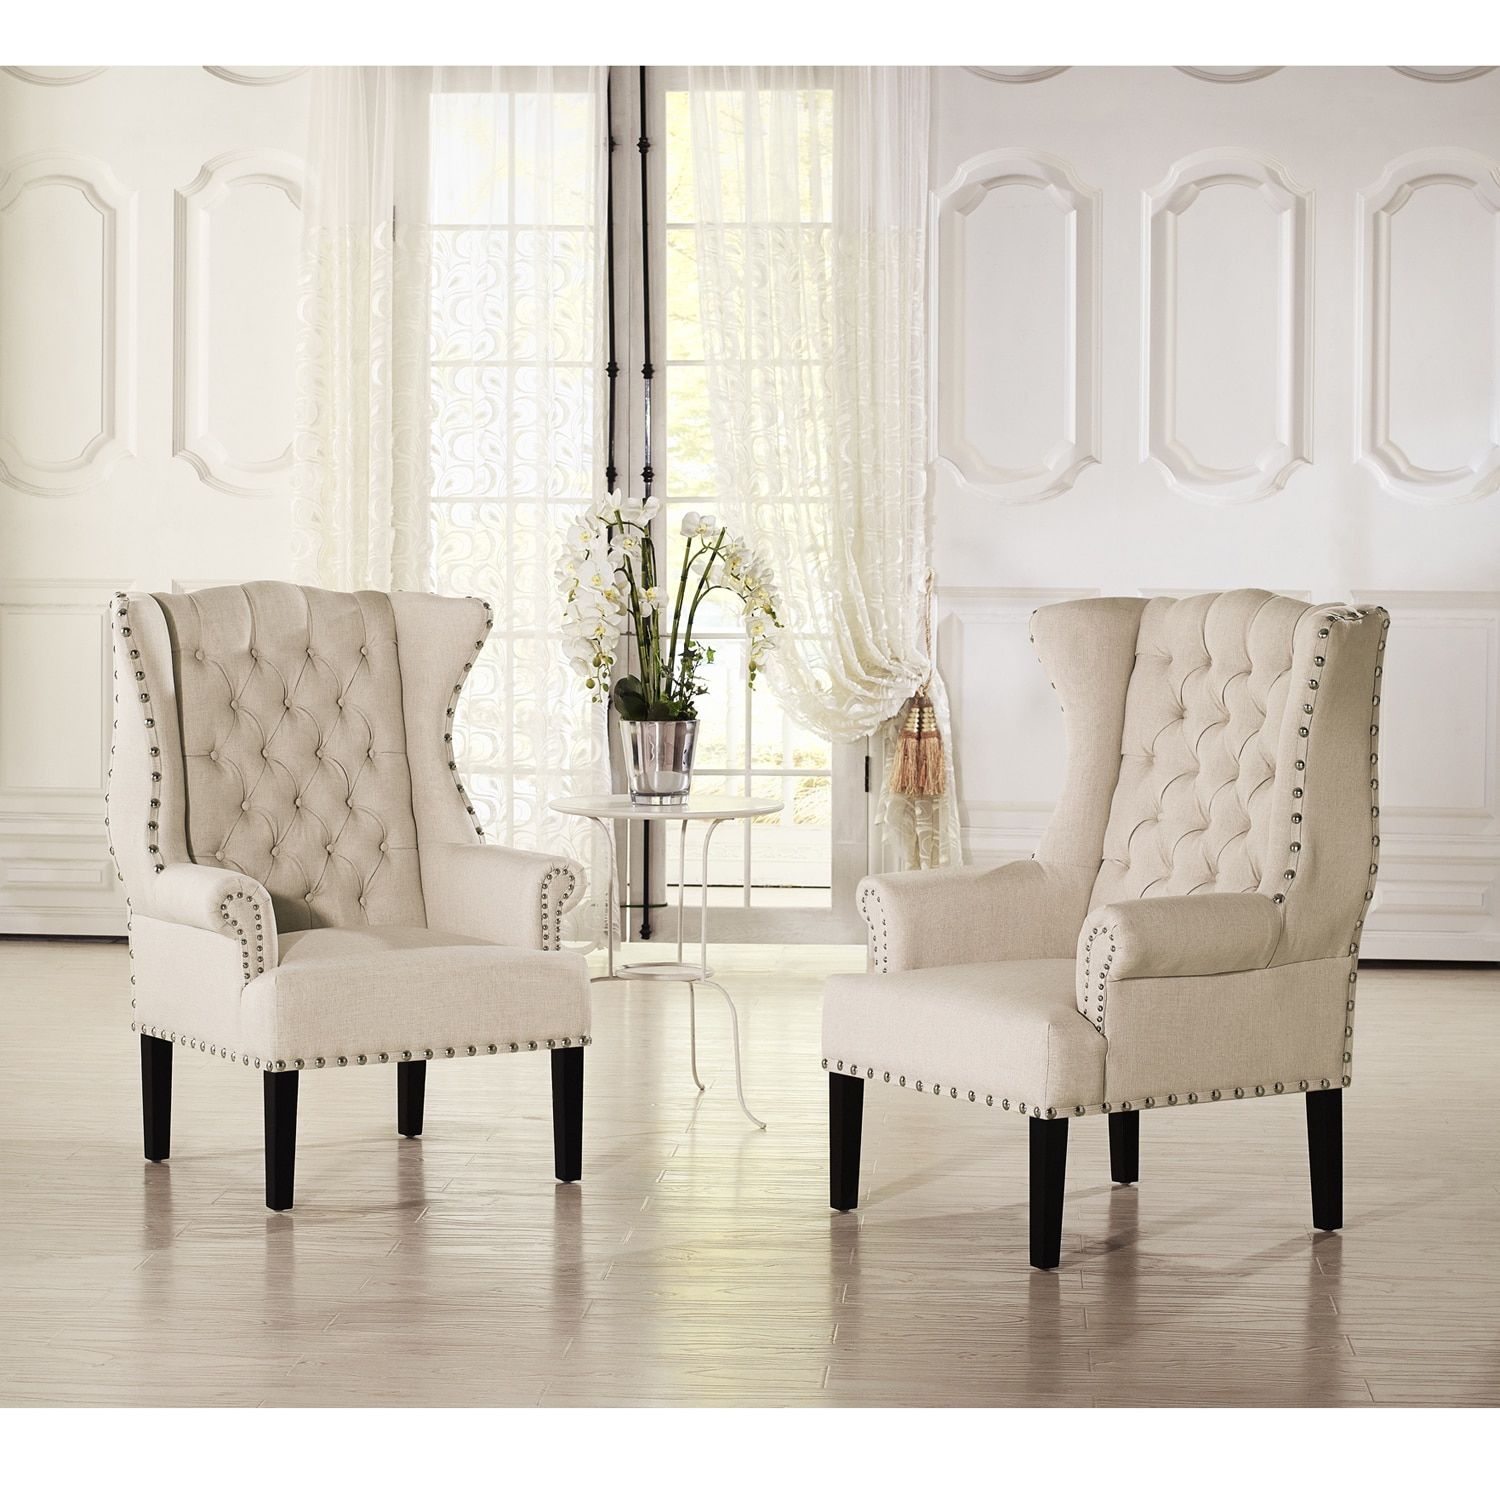 Accent Chairs Living Room Chairs: Create an inviting atmosphere with ...